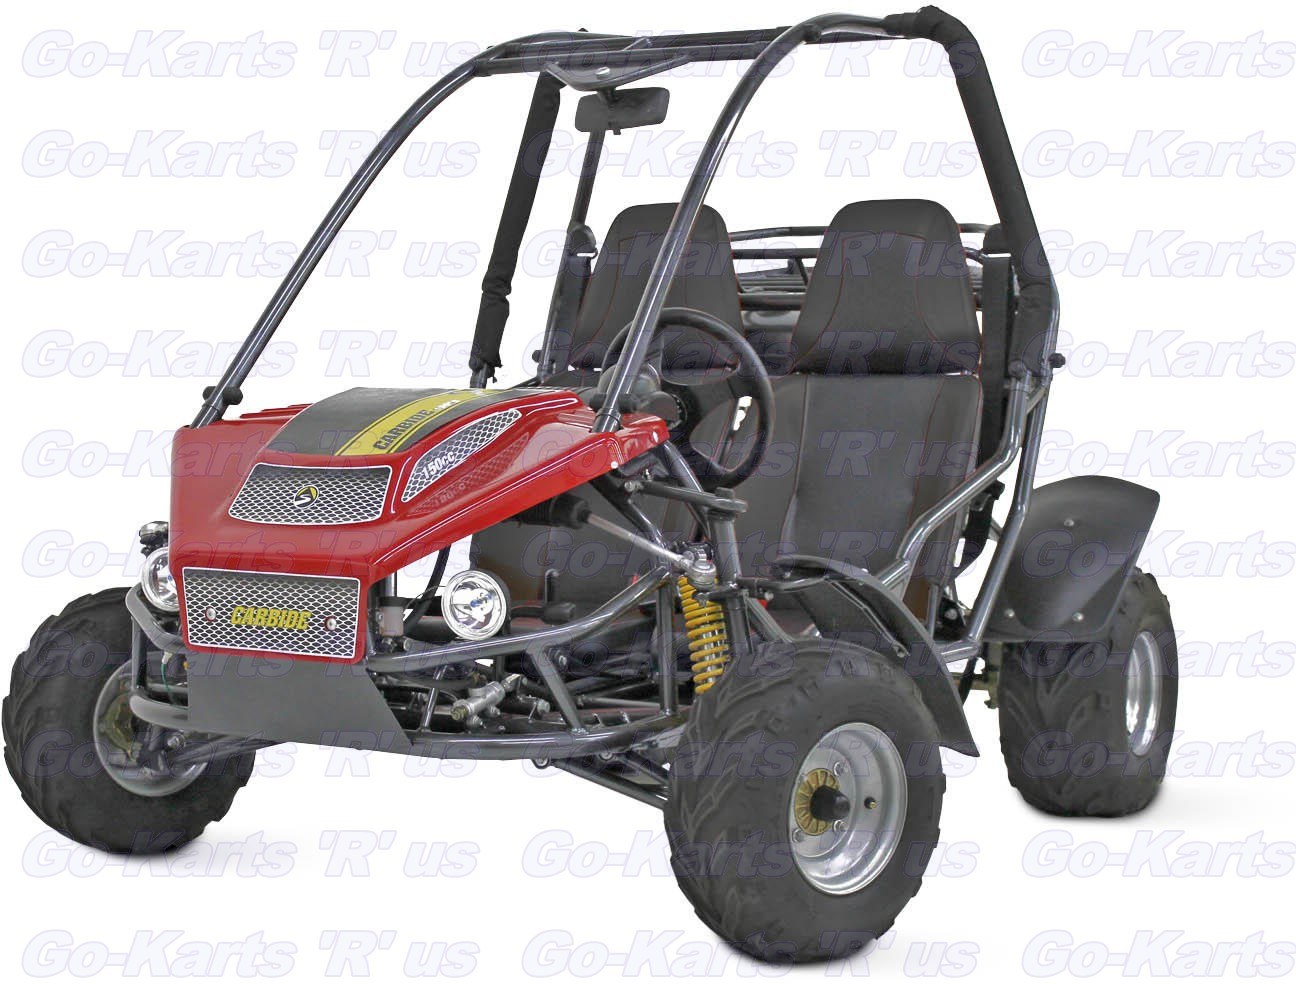 carbide 150cc 9hp go kart buggy. Black Bedroom Furniture Sets. Home Design Ideas